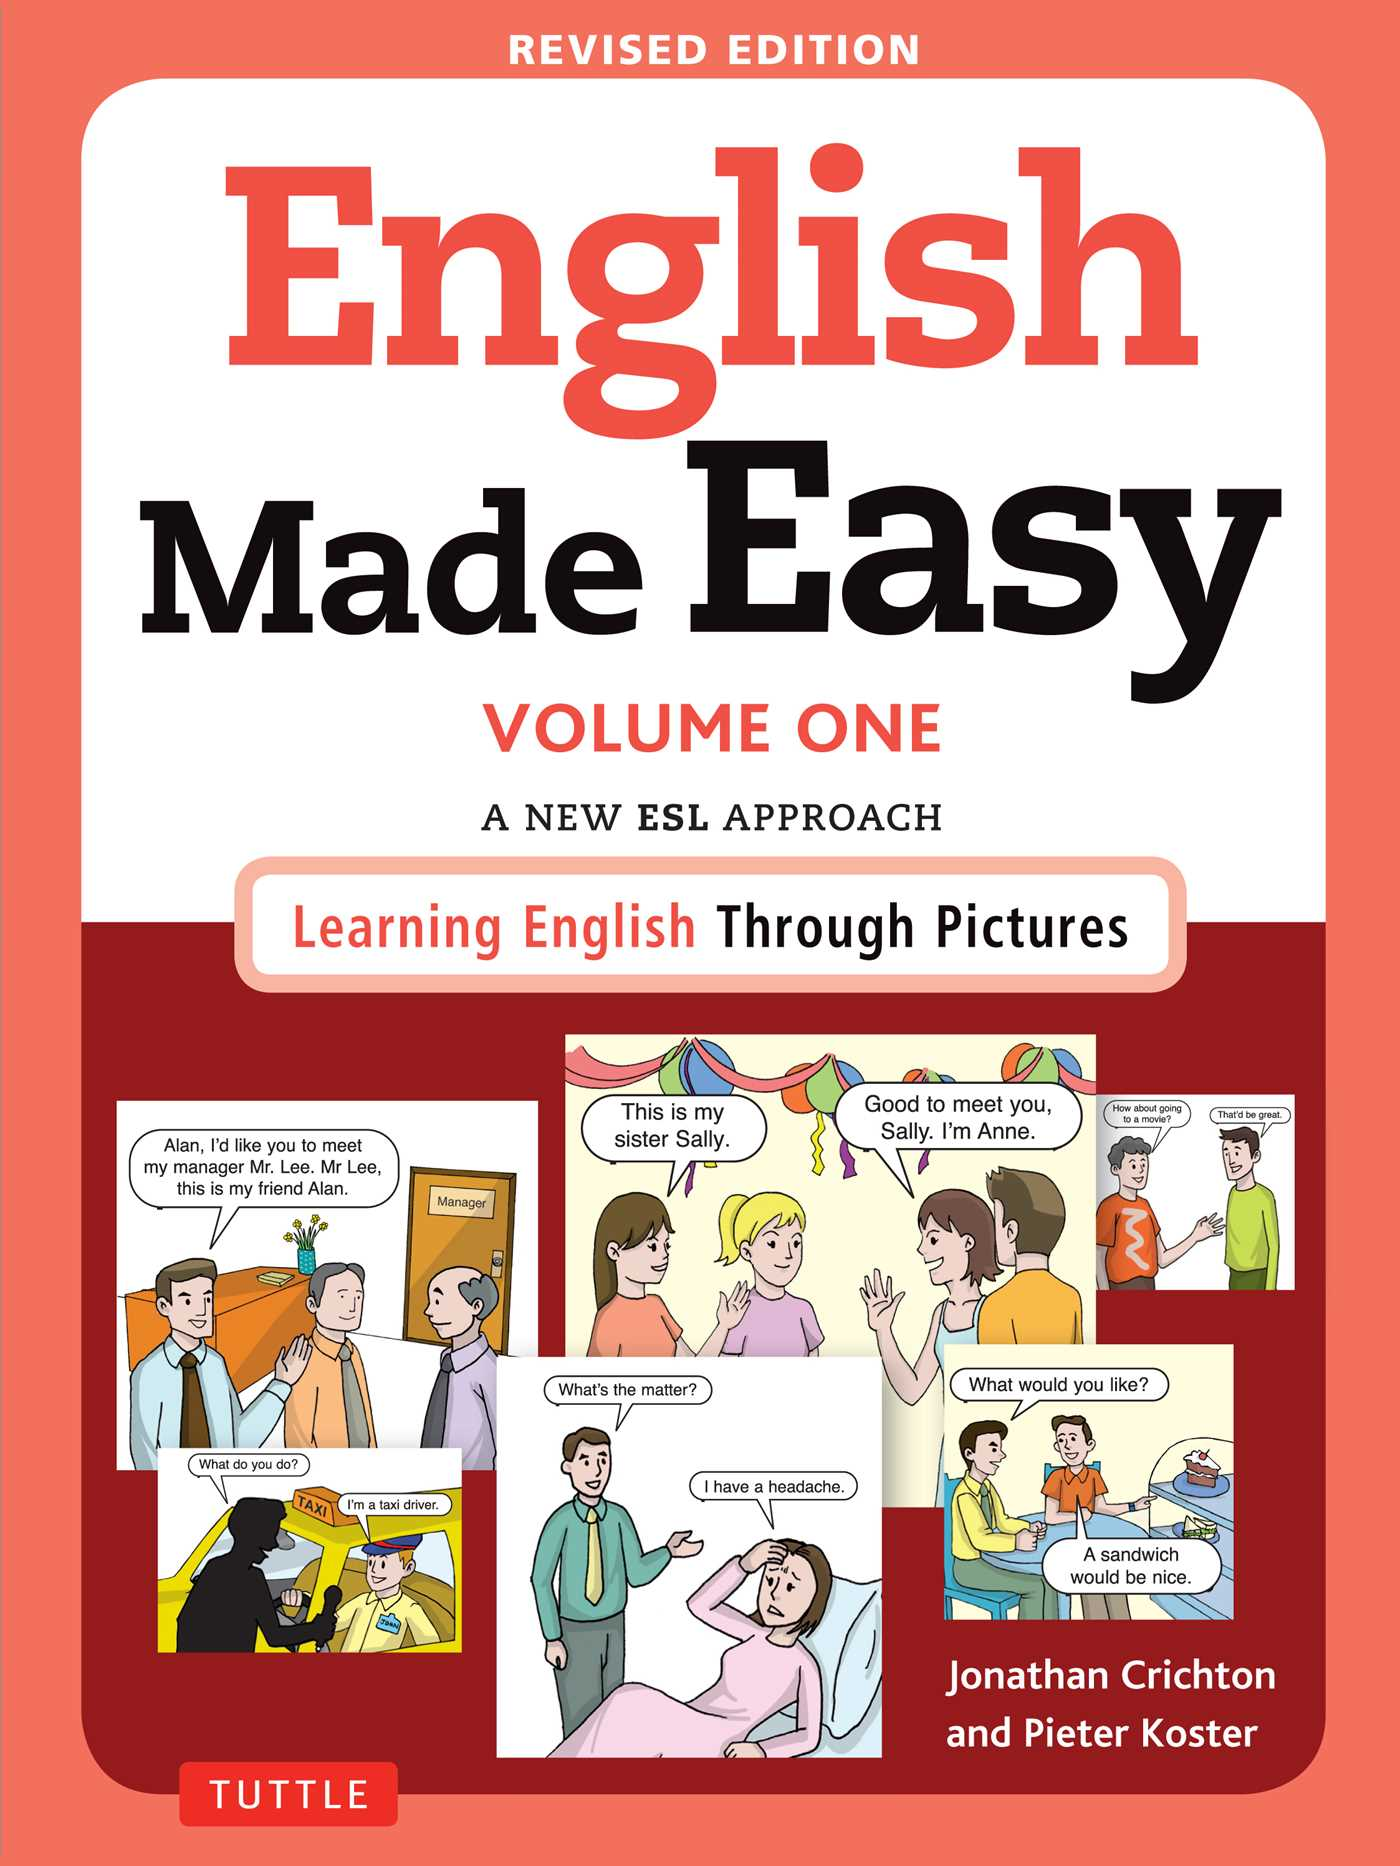 English made easy volume one 9780804845243 hr